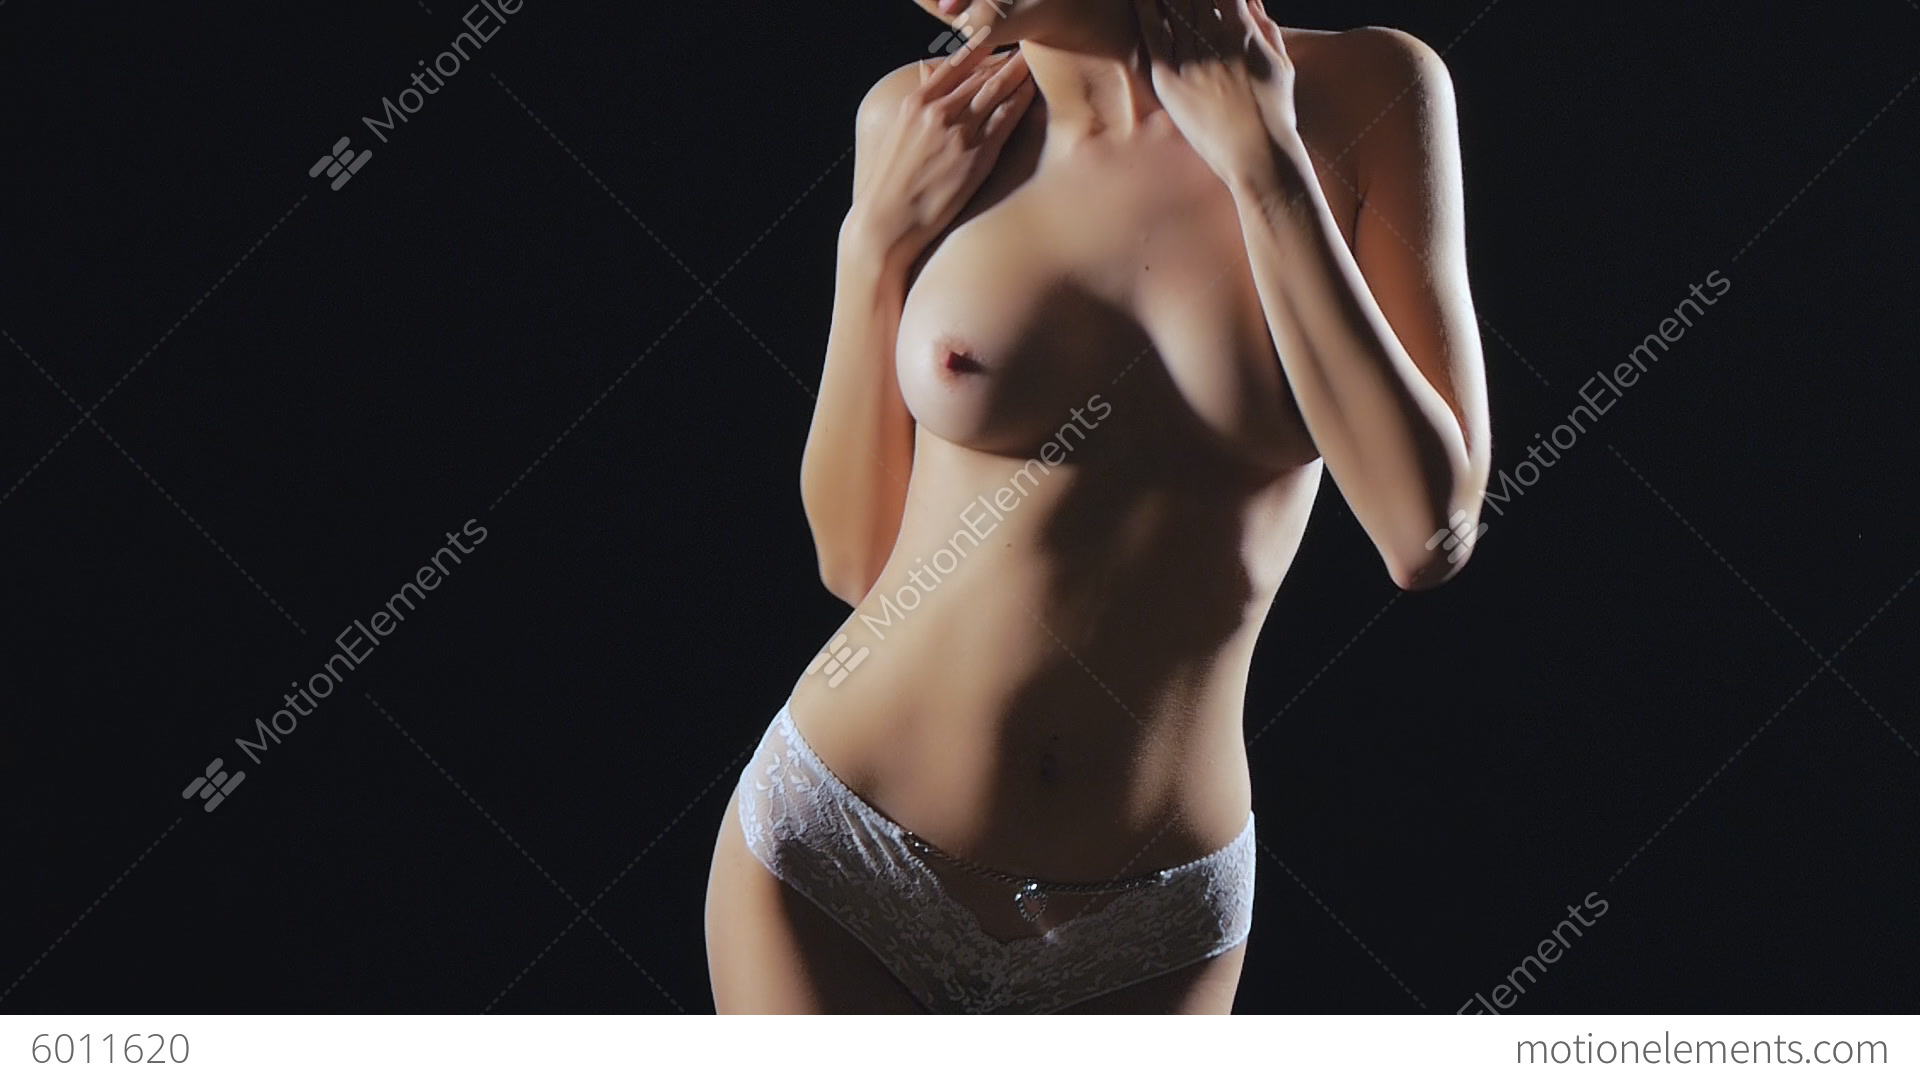 lingerie female escort meaning